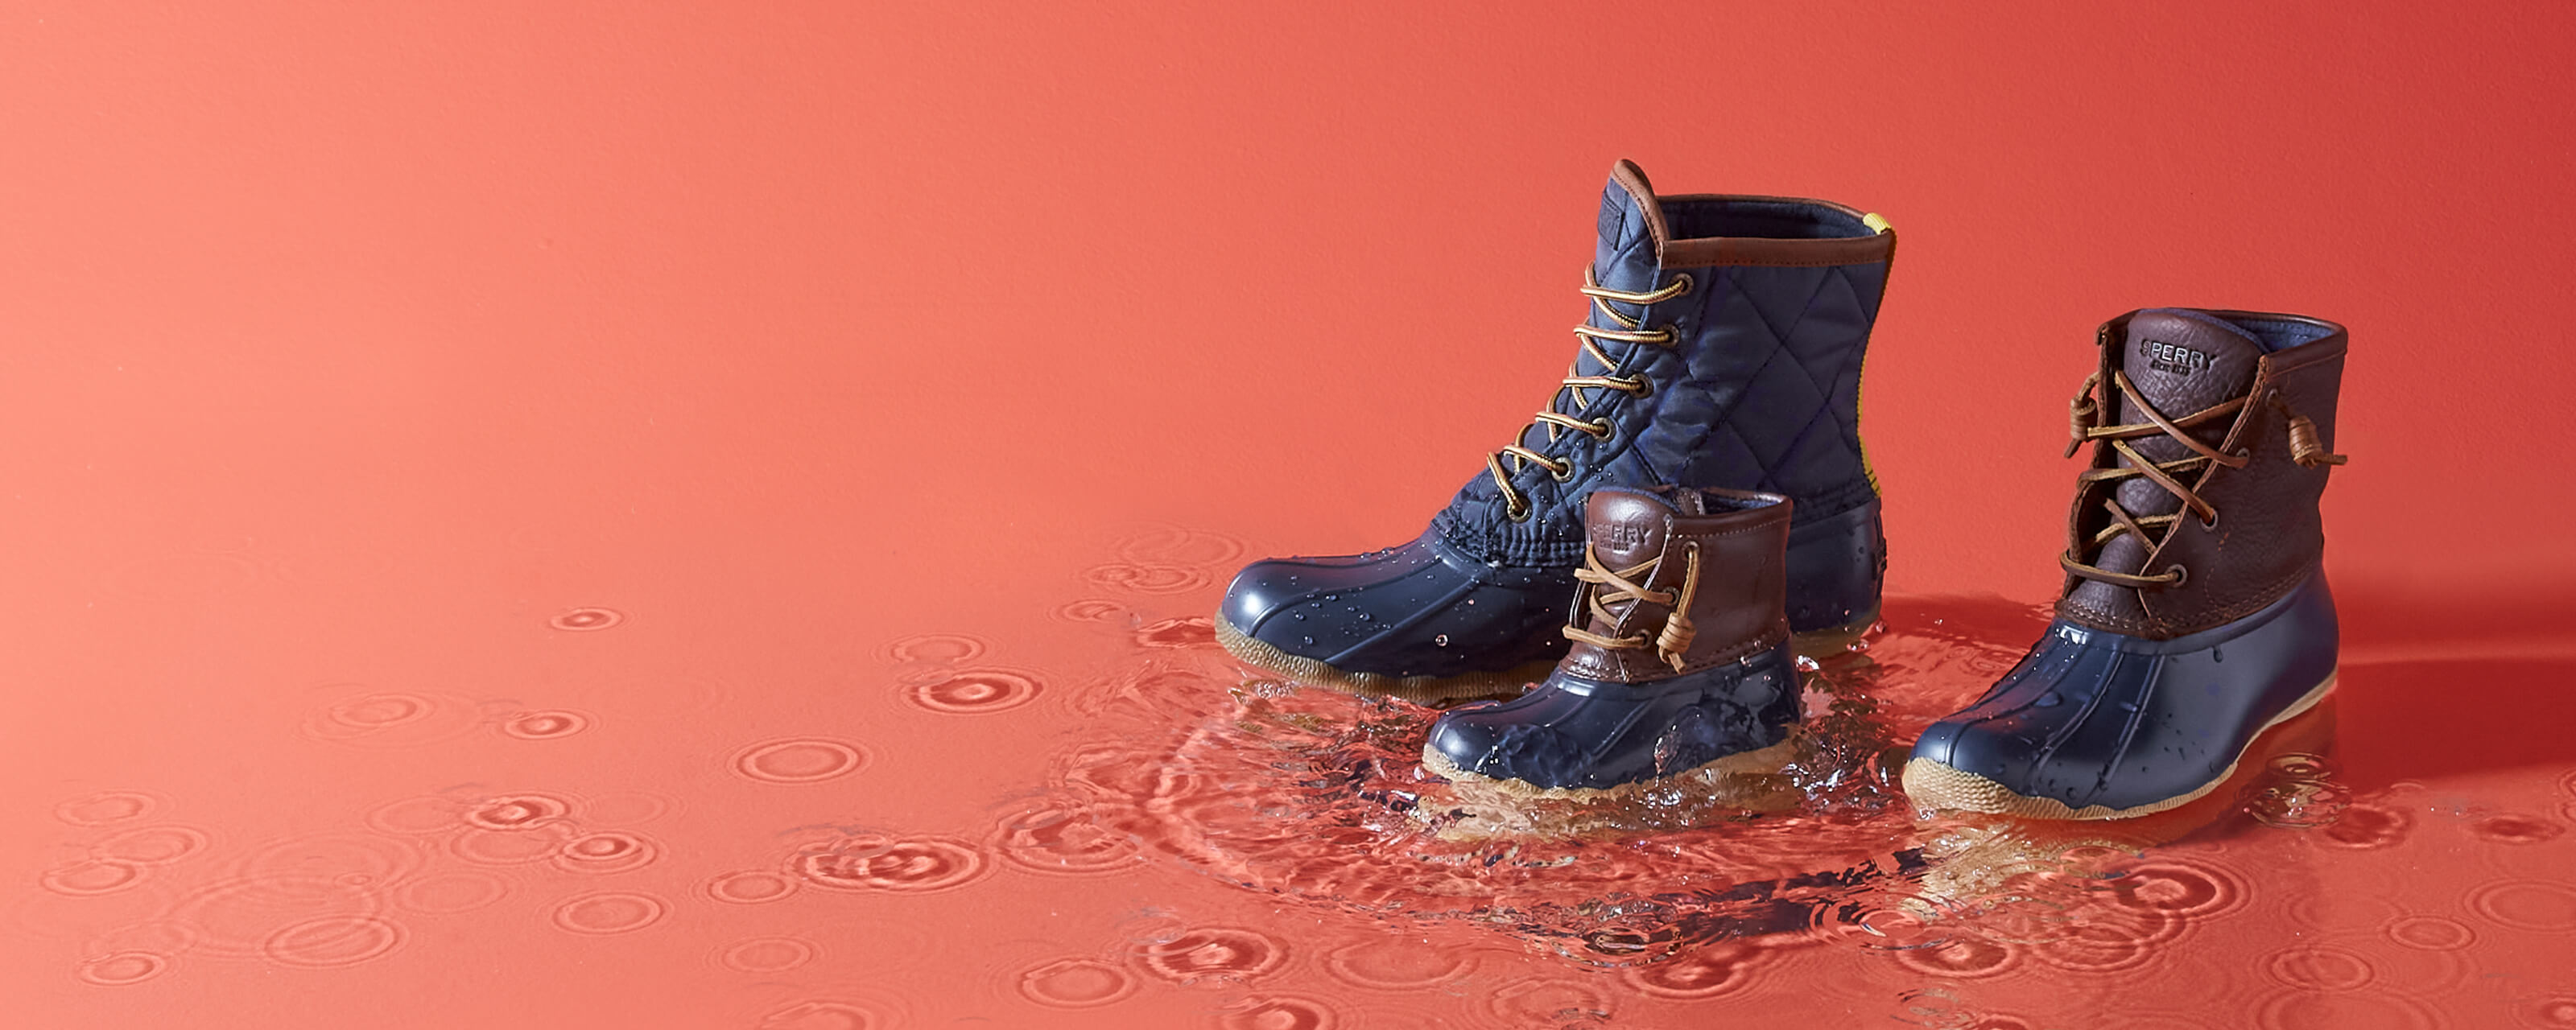 Three sizes of Saltwater boot standing in a puddle.